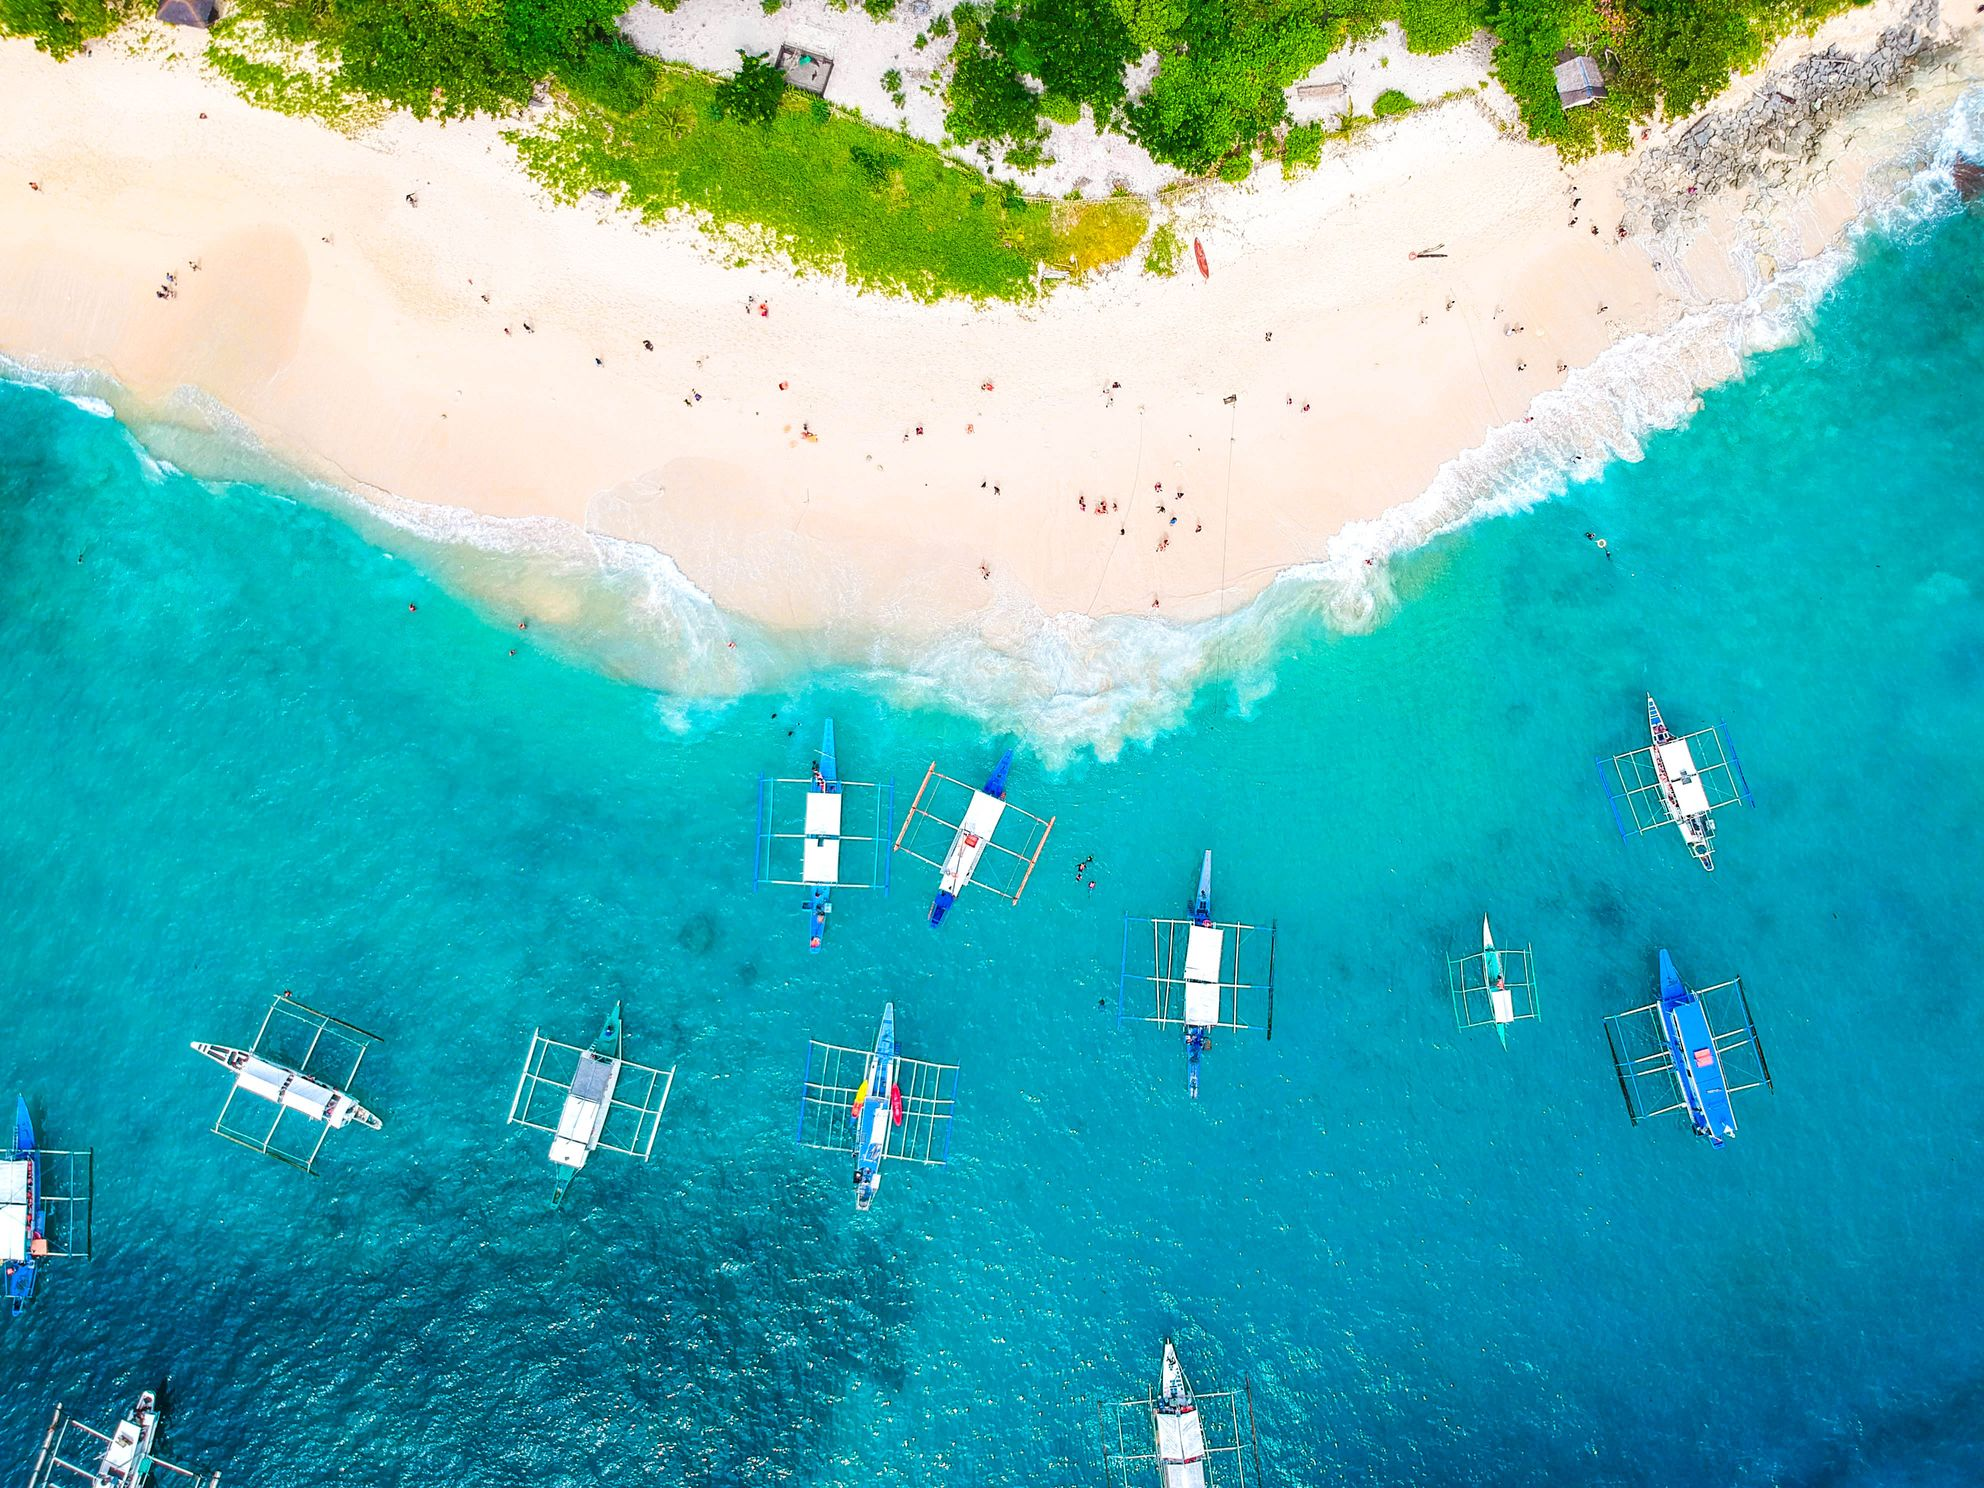 Aerial view of numerous outrigger boats moored on crystalline turquoise waters before a white sand beach in El Nido, Palawan, Philippines